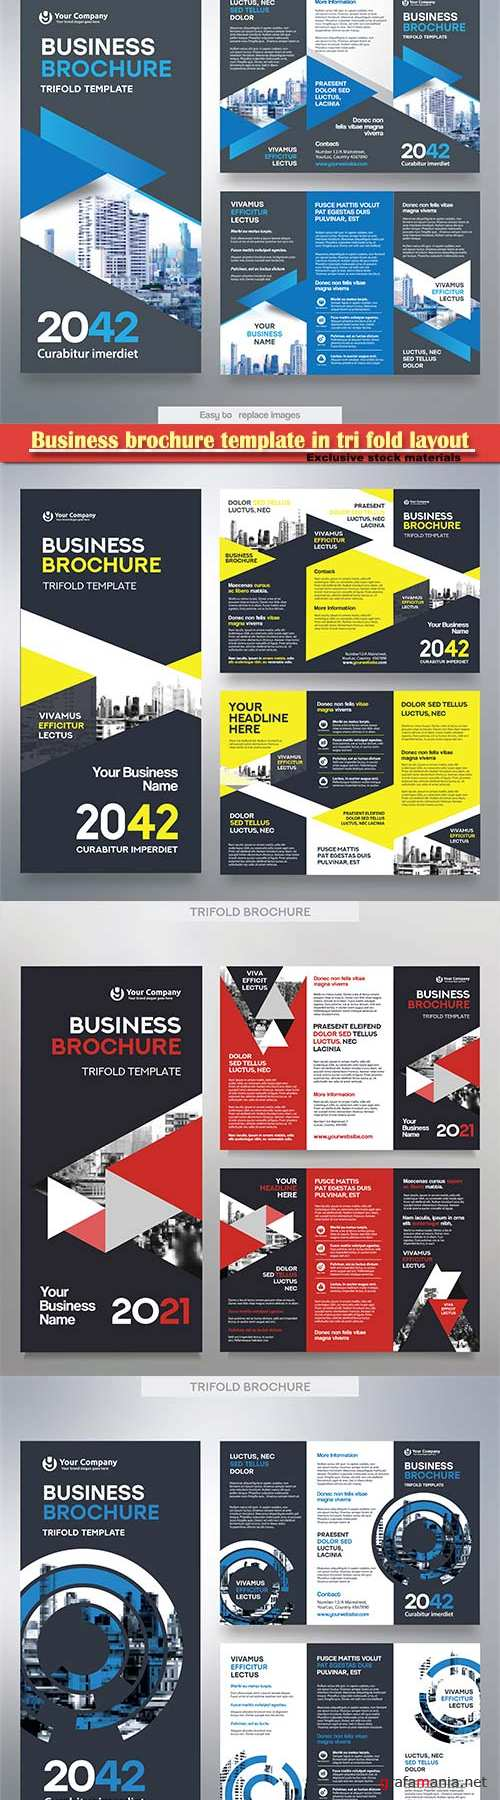 Business brochure template in tri fold layout, corporate design leaflet with replacable image